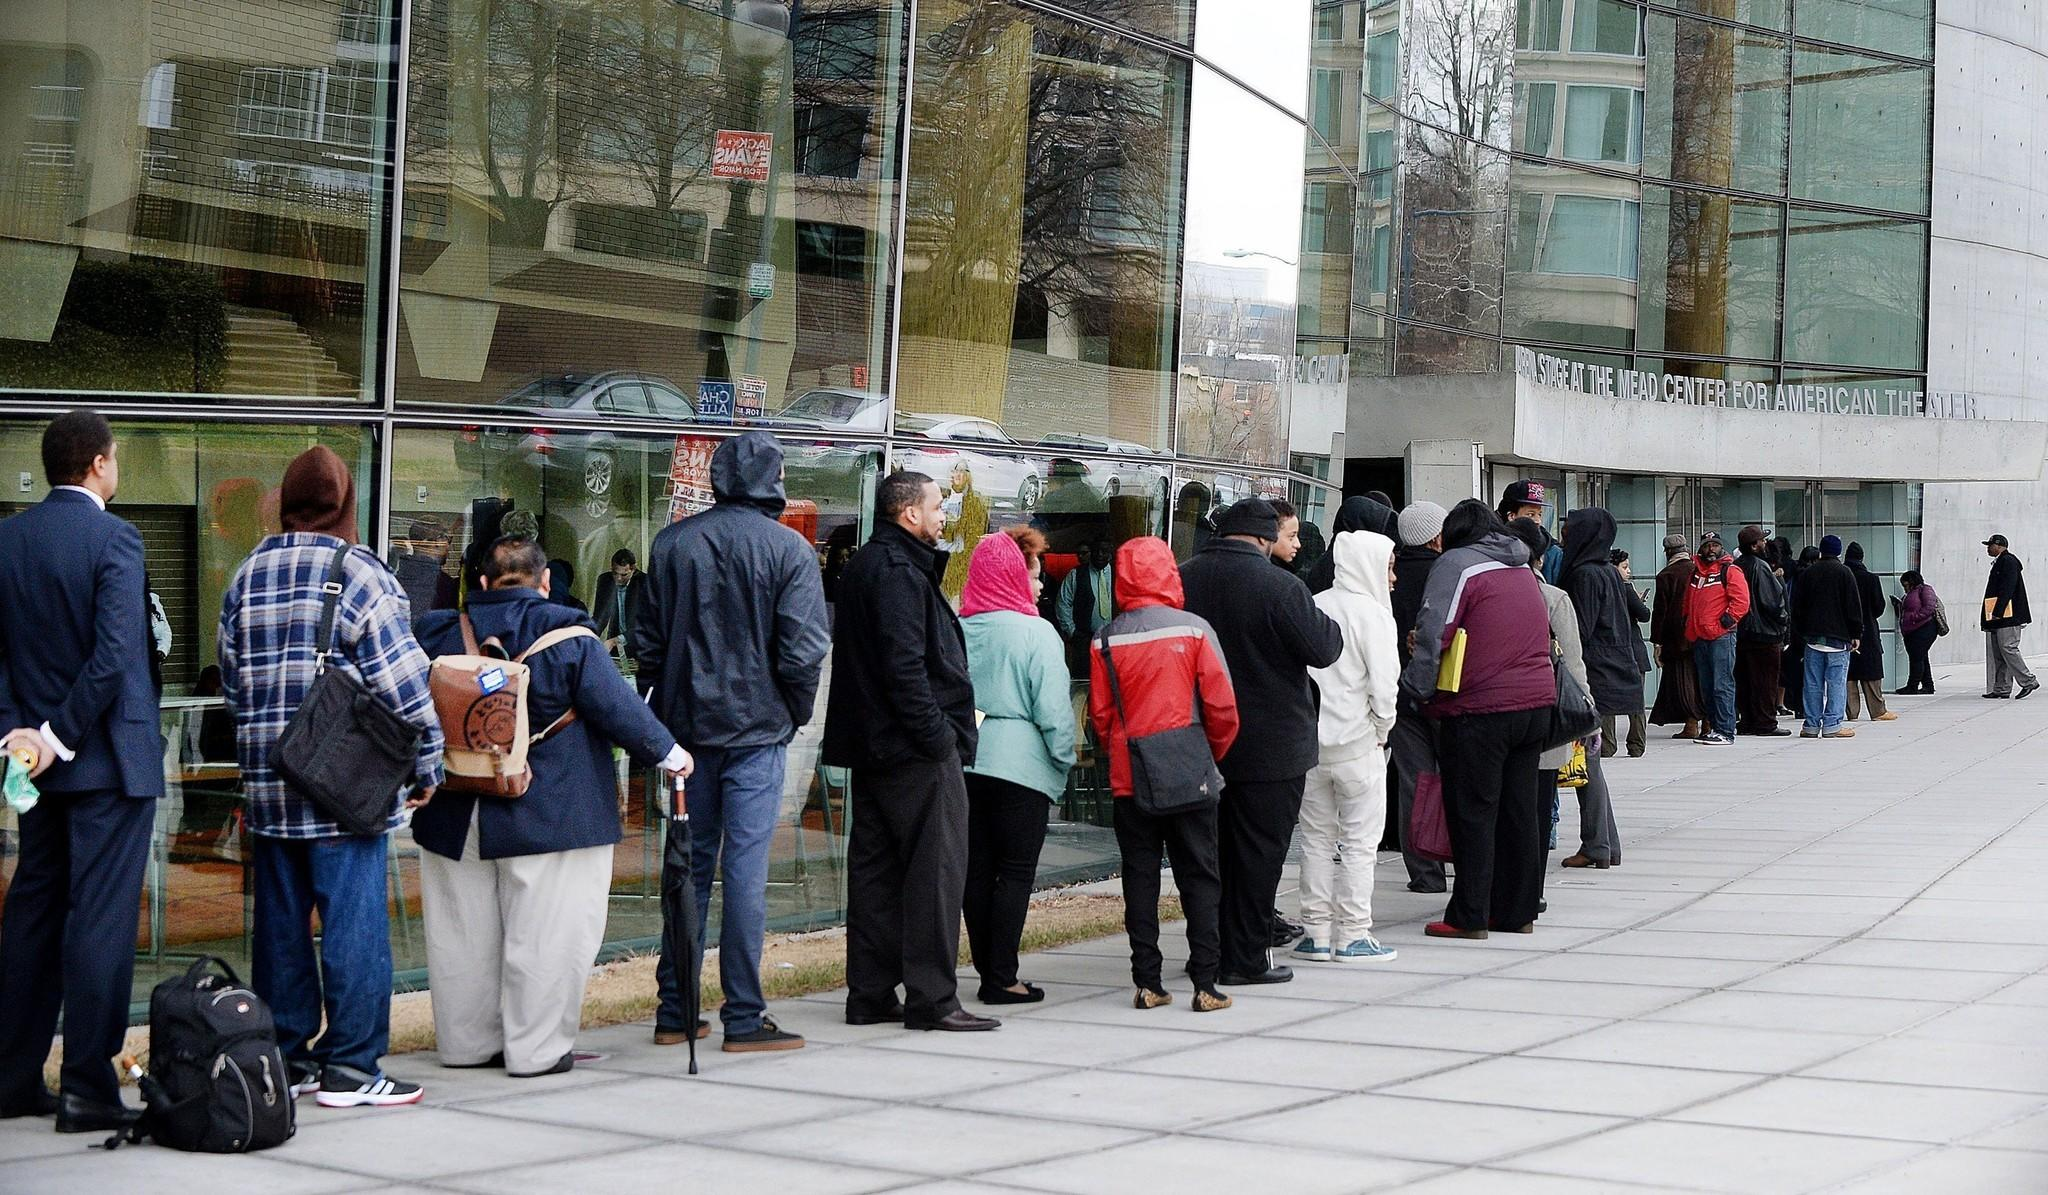 Job seekers wait in line to enter a job fair at the Arena Stage in Washington.